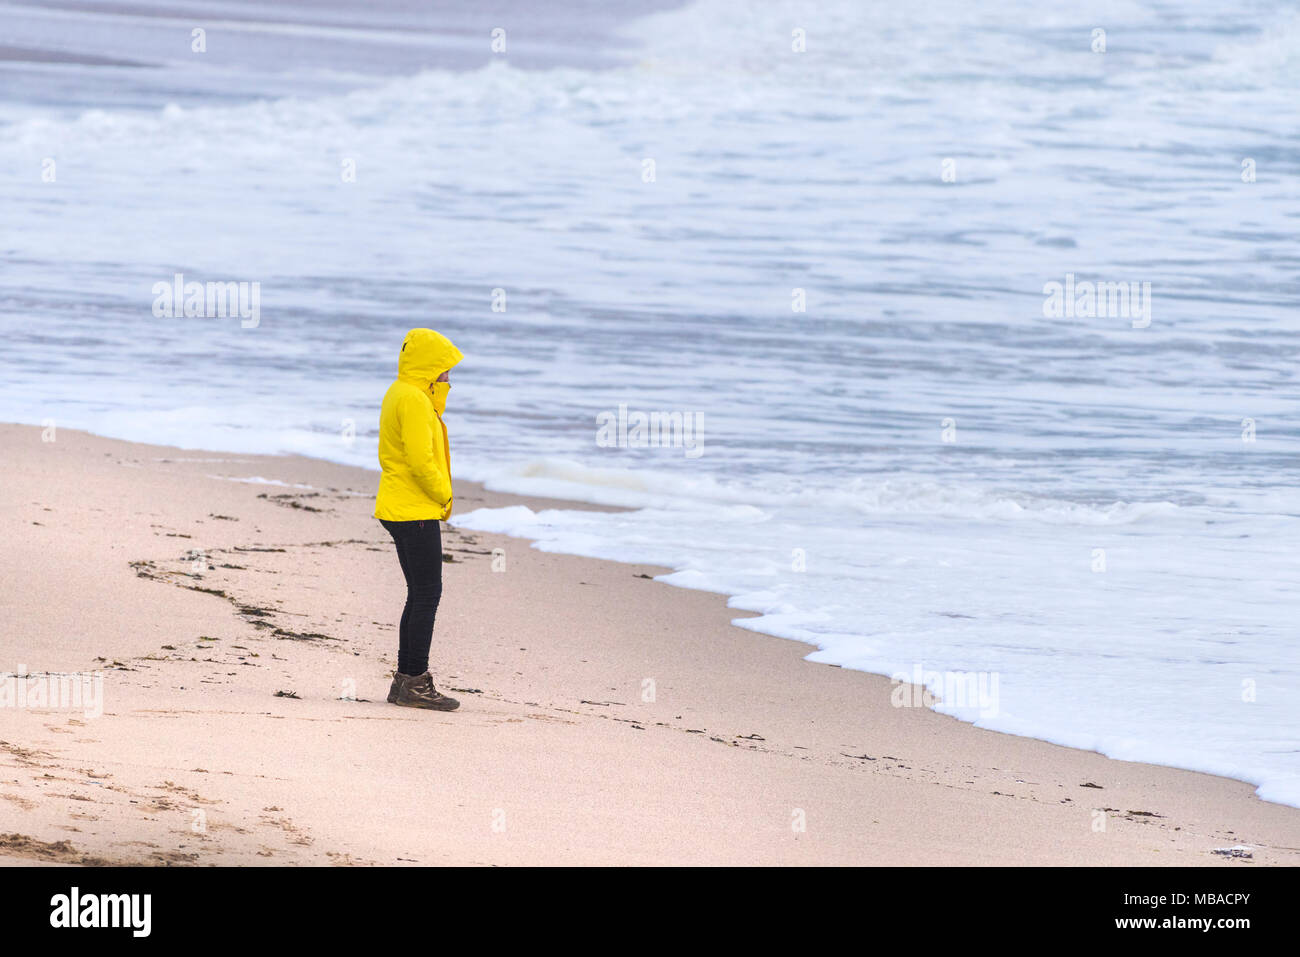 UK Weather. A woman wearing a bright yellow jacket braving the chilly weather conditions on the coast at Newquay Cornwall. - Stock Image